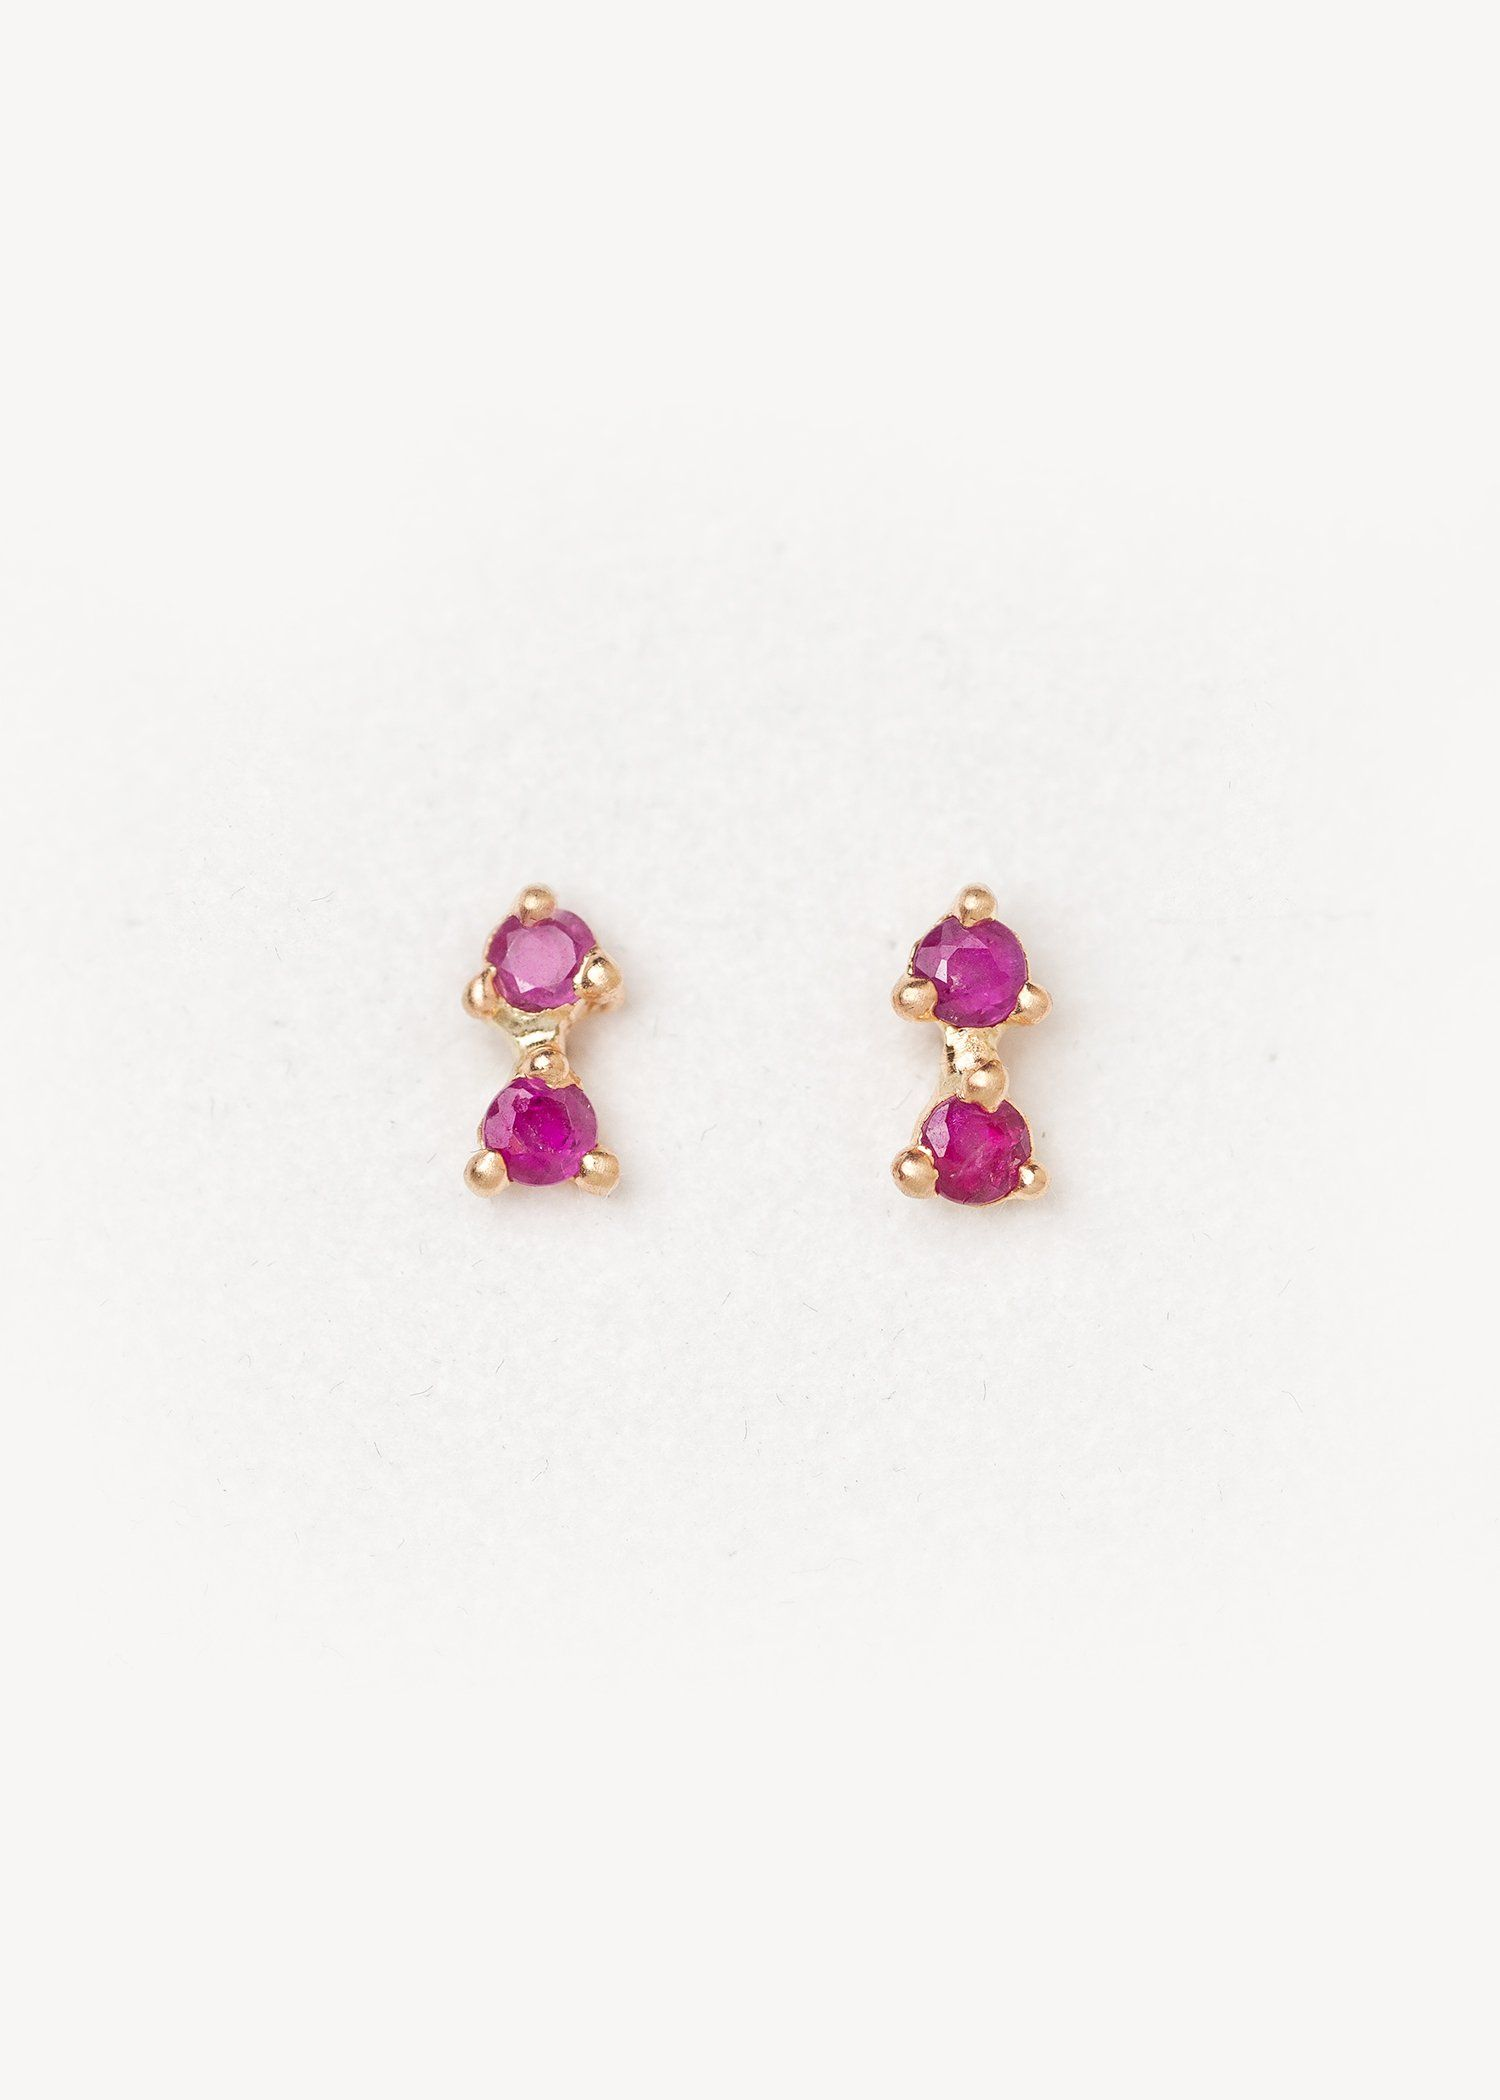 b0444ff17 Elara Ruby Earrings - Valley Rose Studio. This gorgeous simple and elegant  bar climber constellation inspired earring has two glowing 2mm gem cut ...